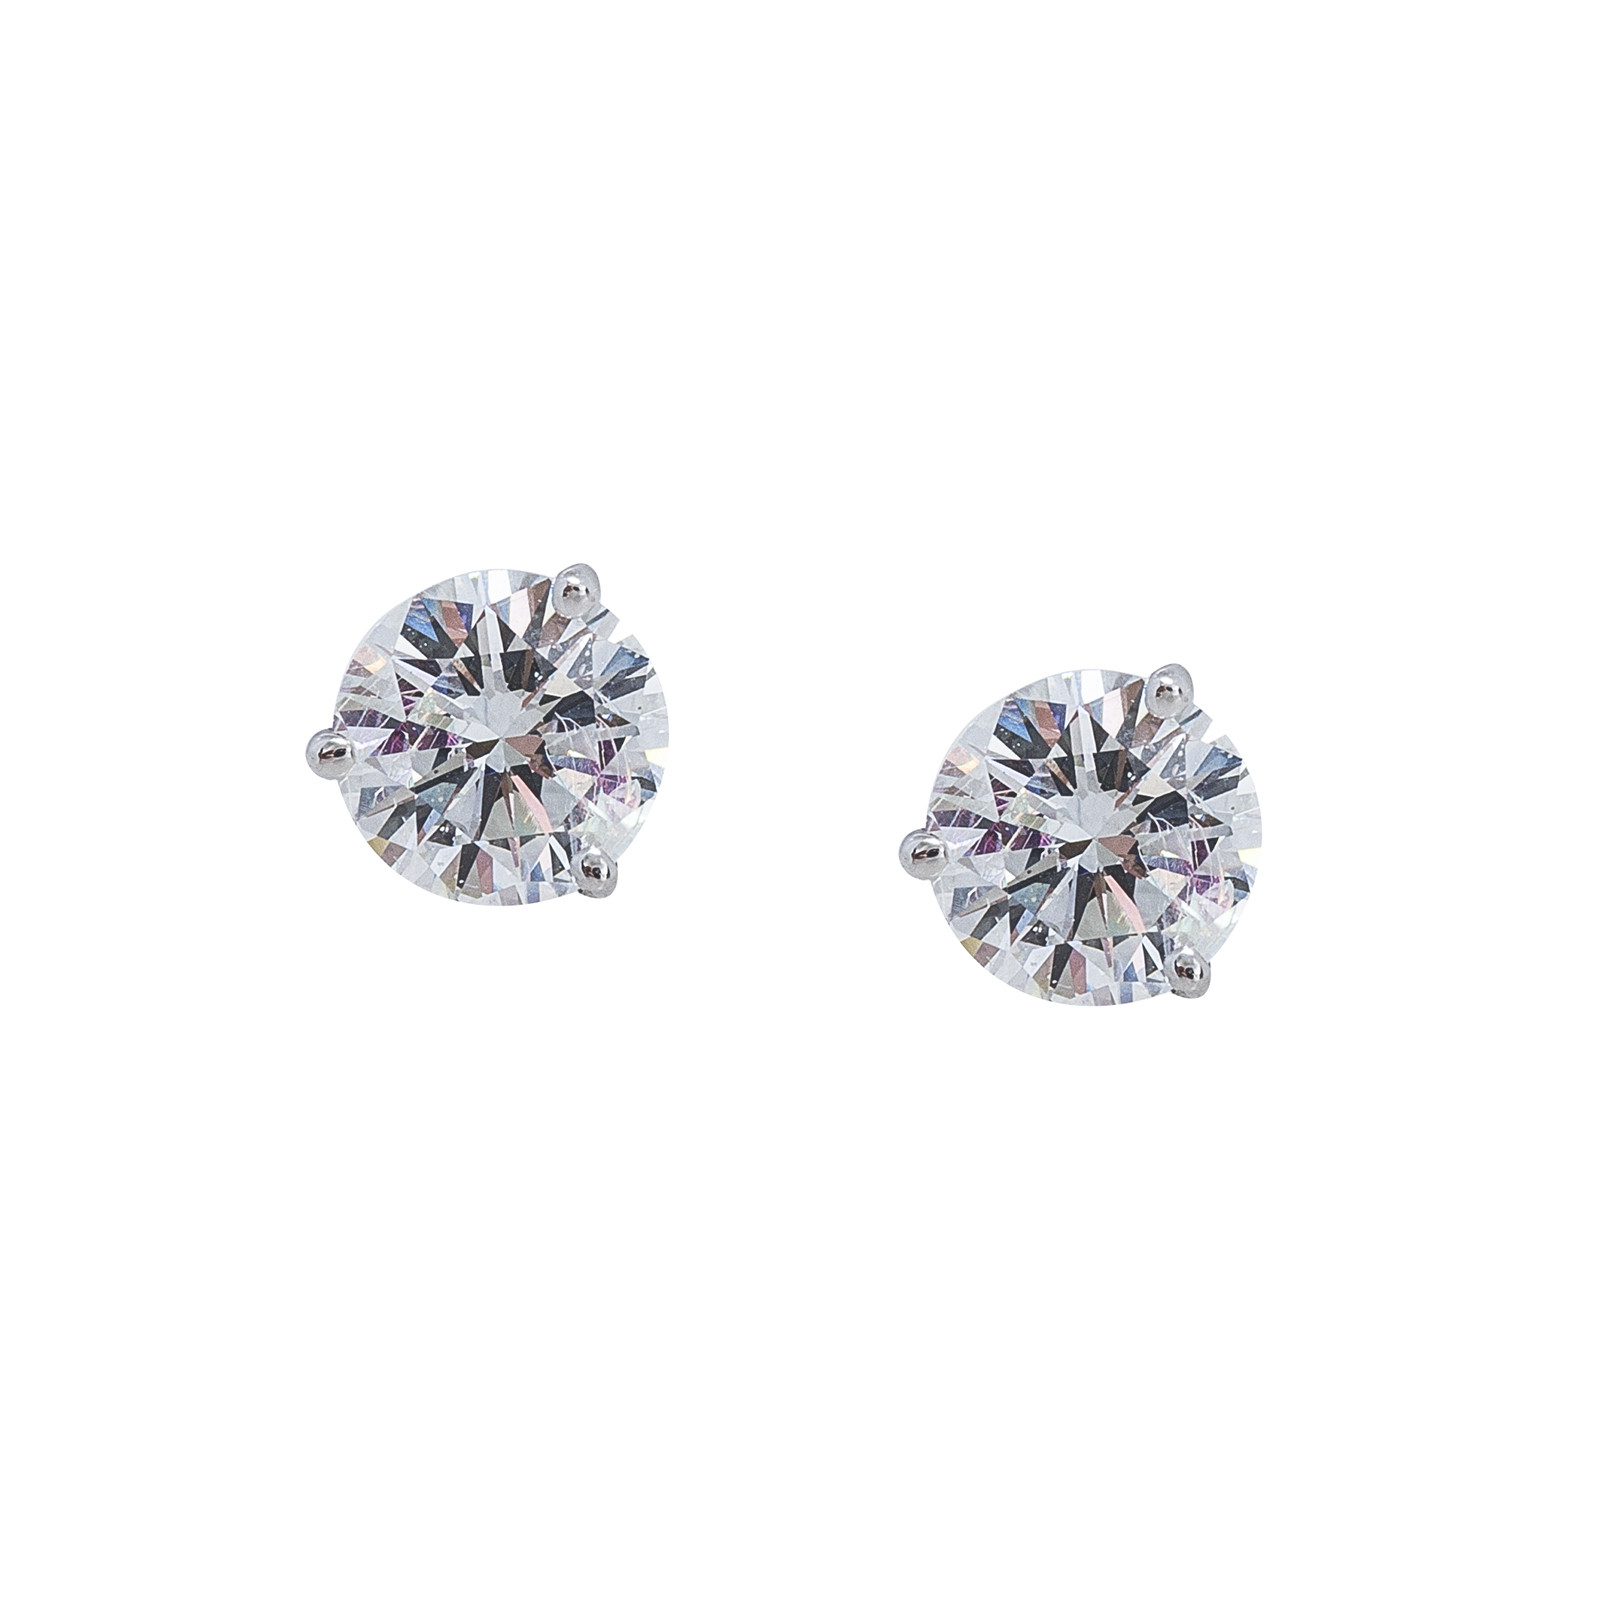 New 2.09 CTW Diamond Stud Earrings